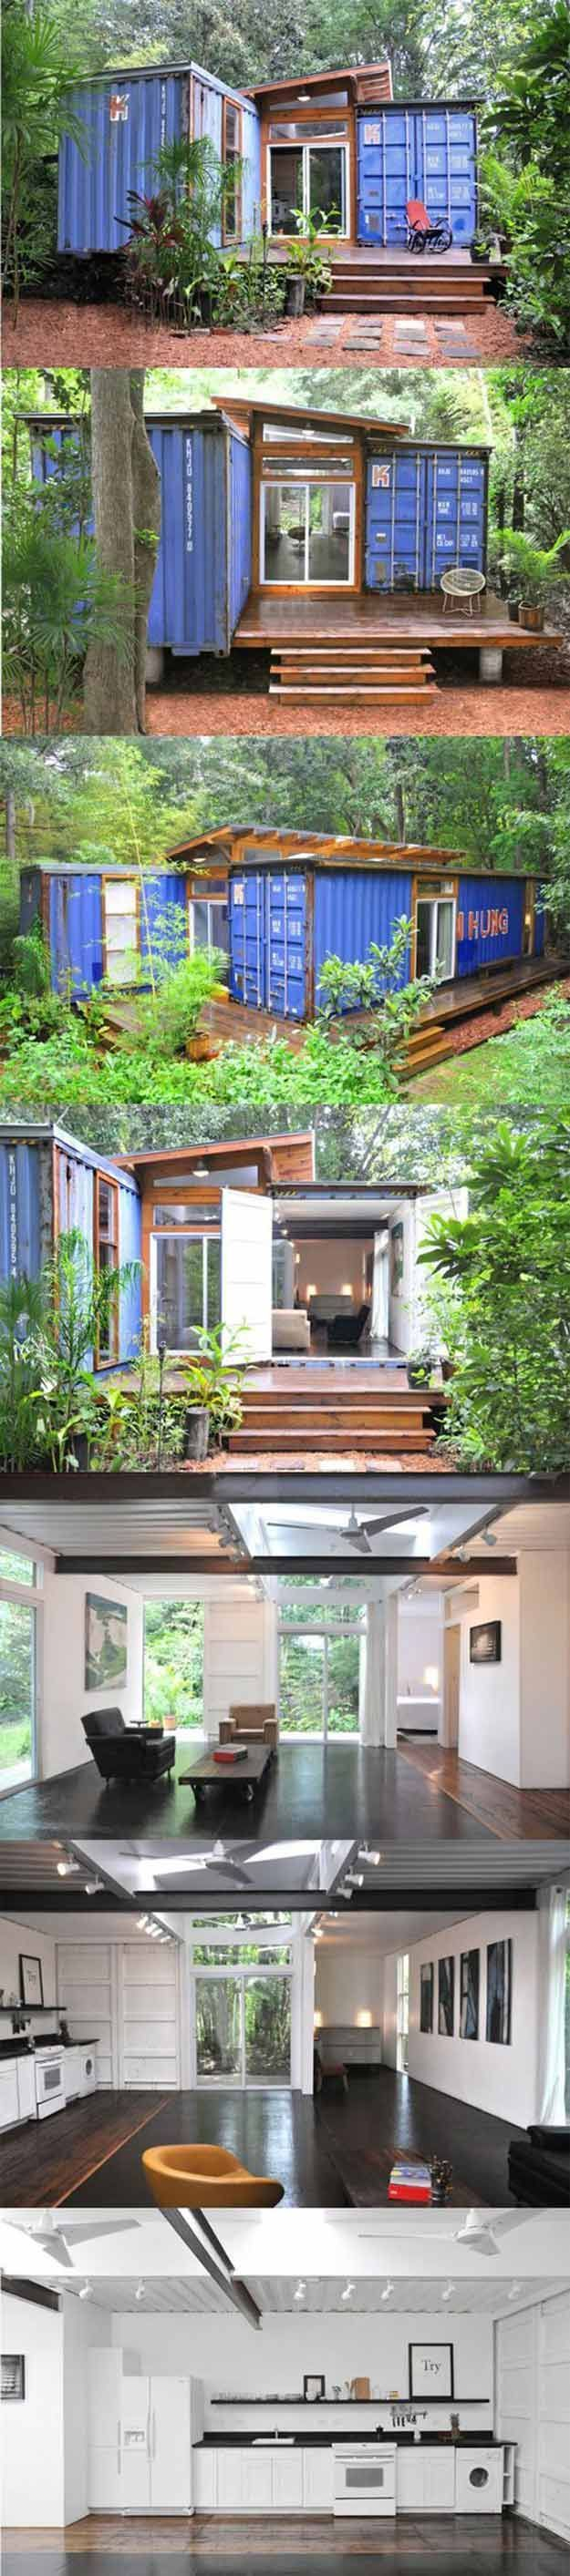 17 Cool Container Homes To Inspire Your Own   Überseecontainer ...